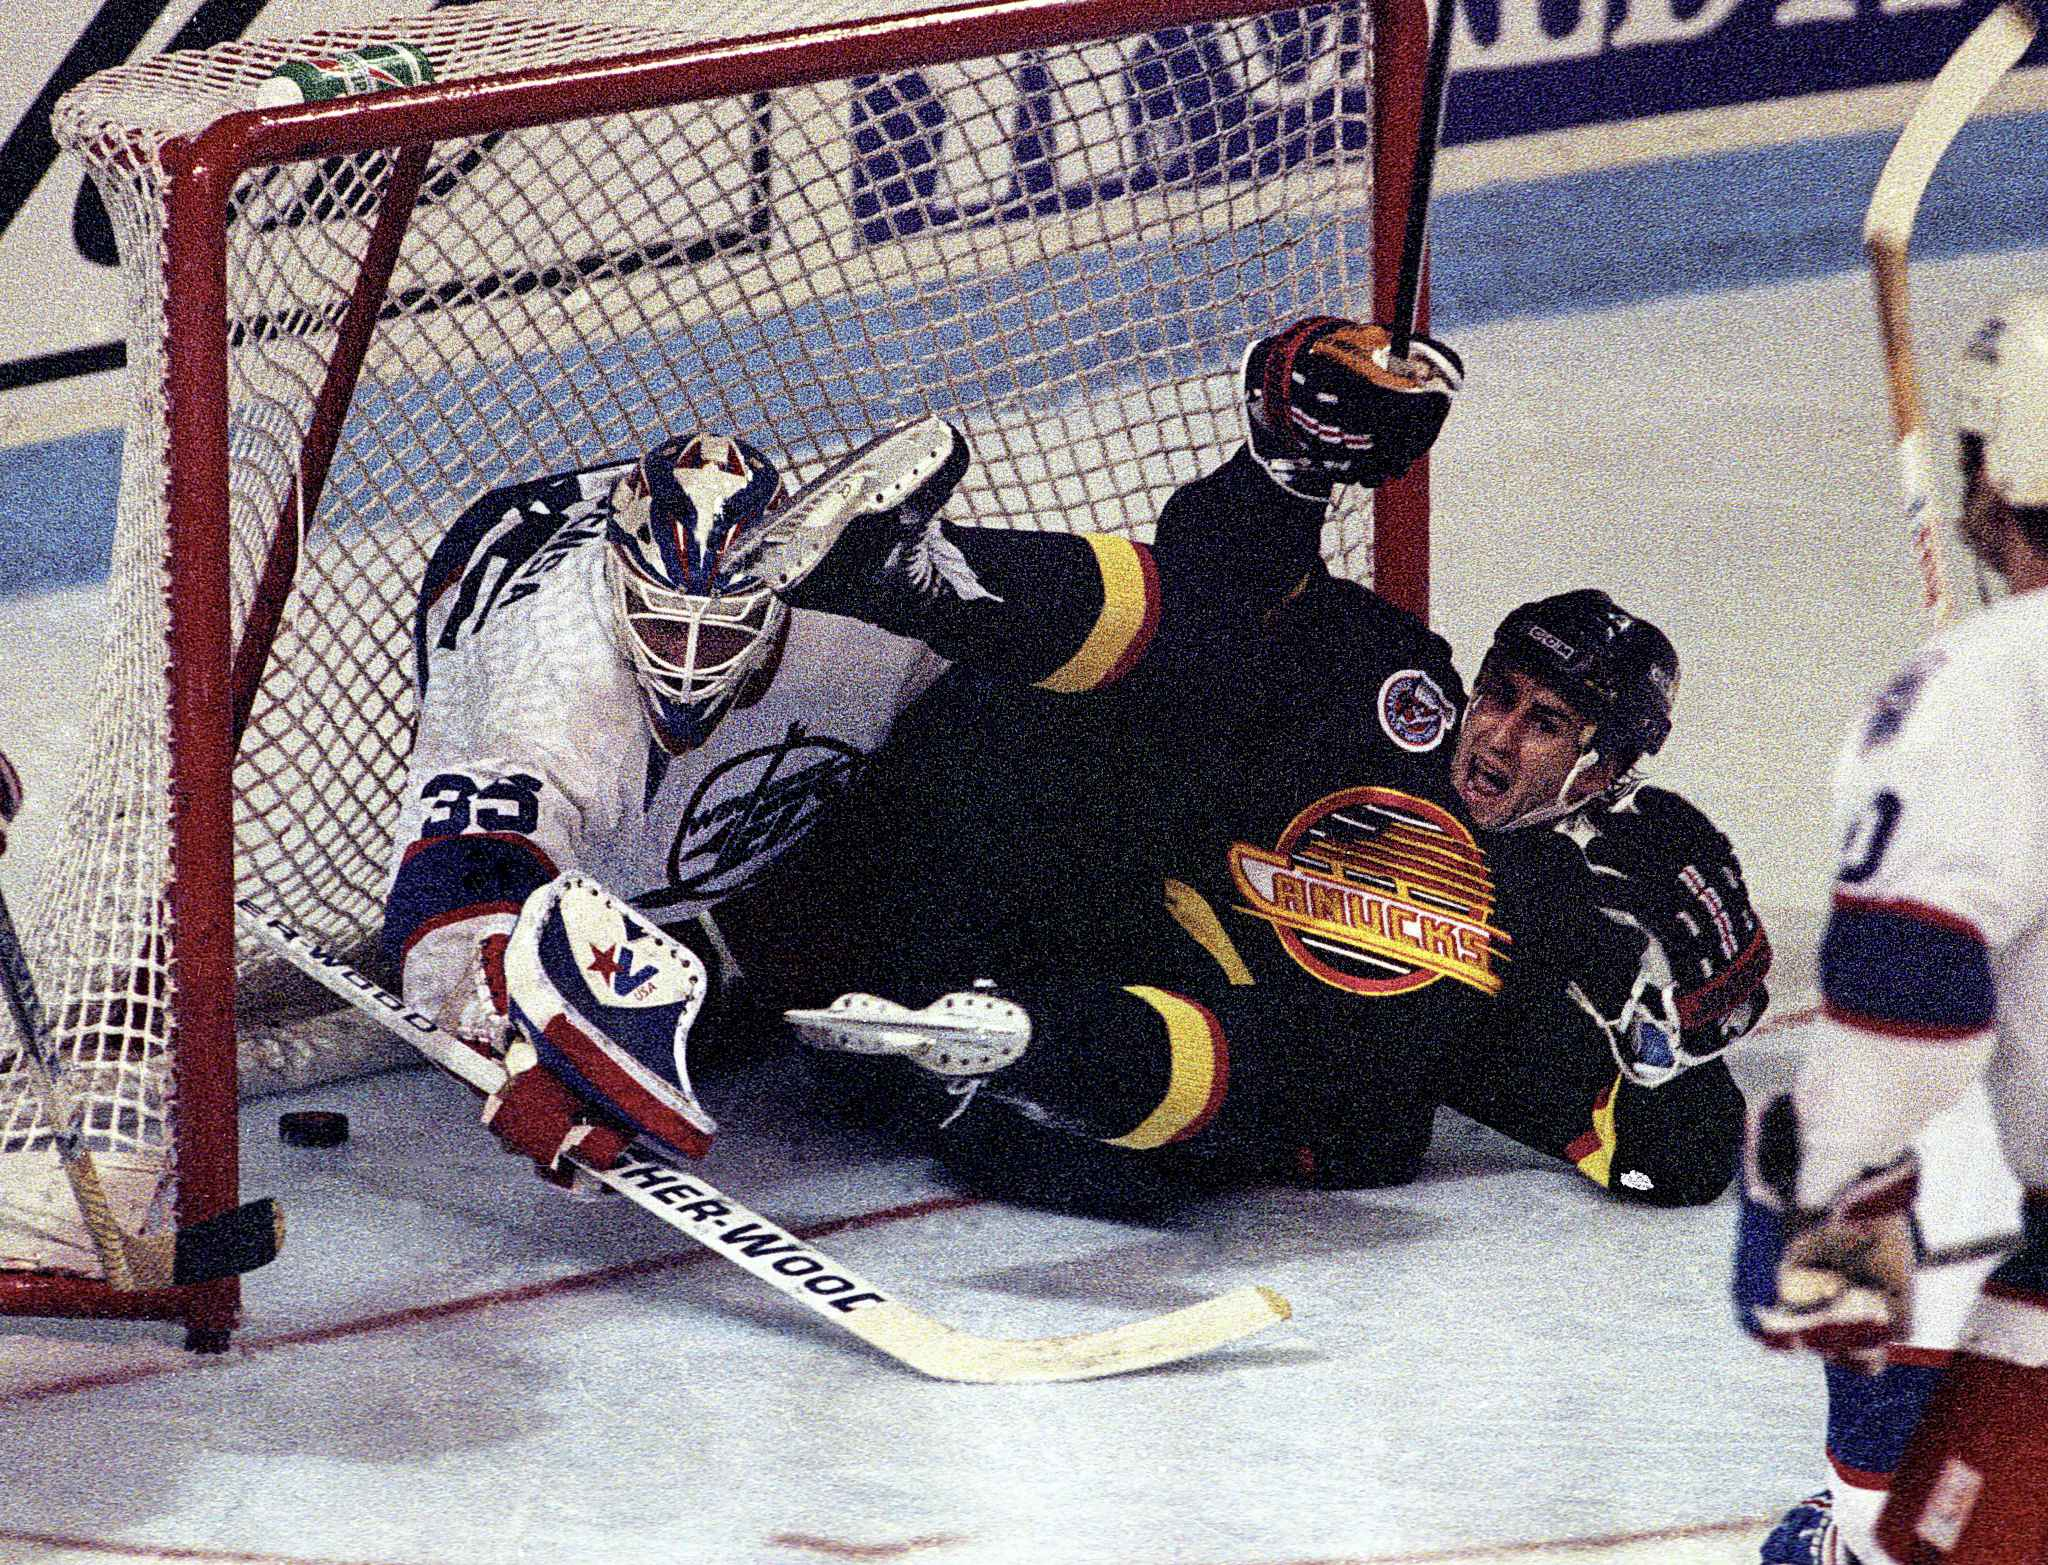 Vancouver forward Greg Adams slides into Jets goalie Bob Essensa knocking the puck into the net in overtime, scoring the series-winning goal and effectively ending the Jets' season.